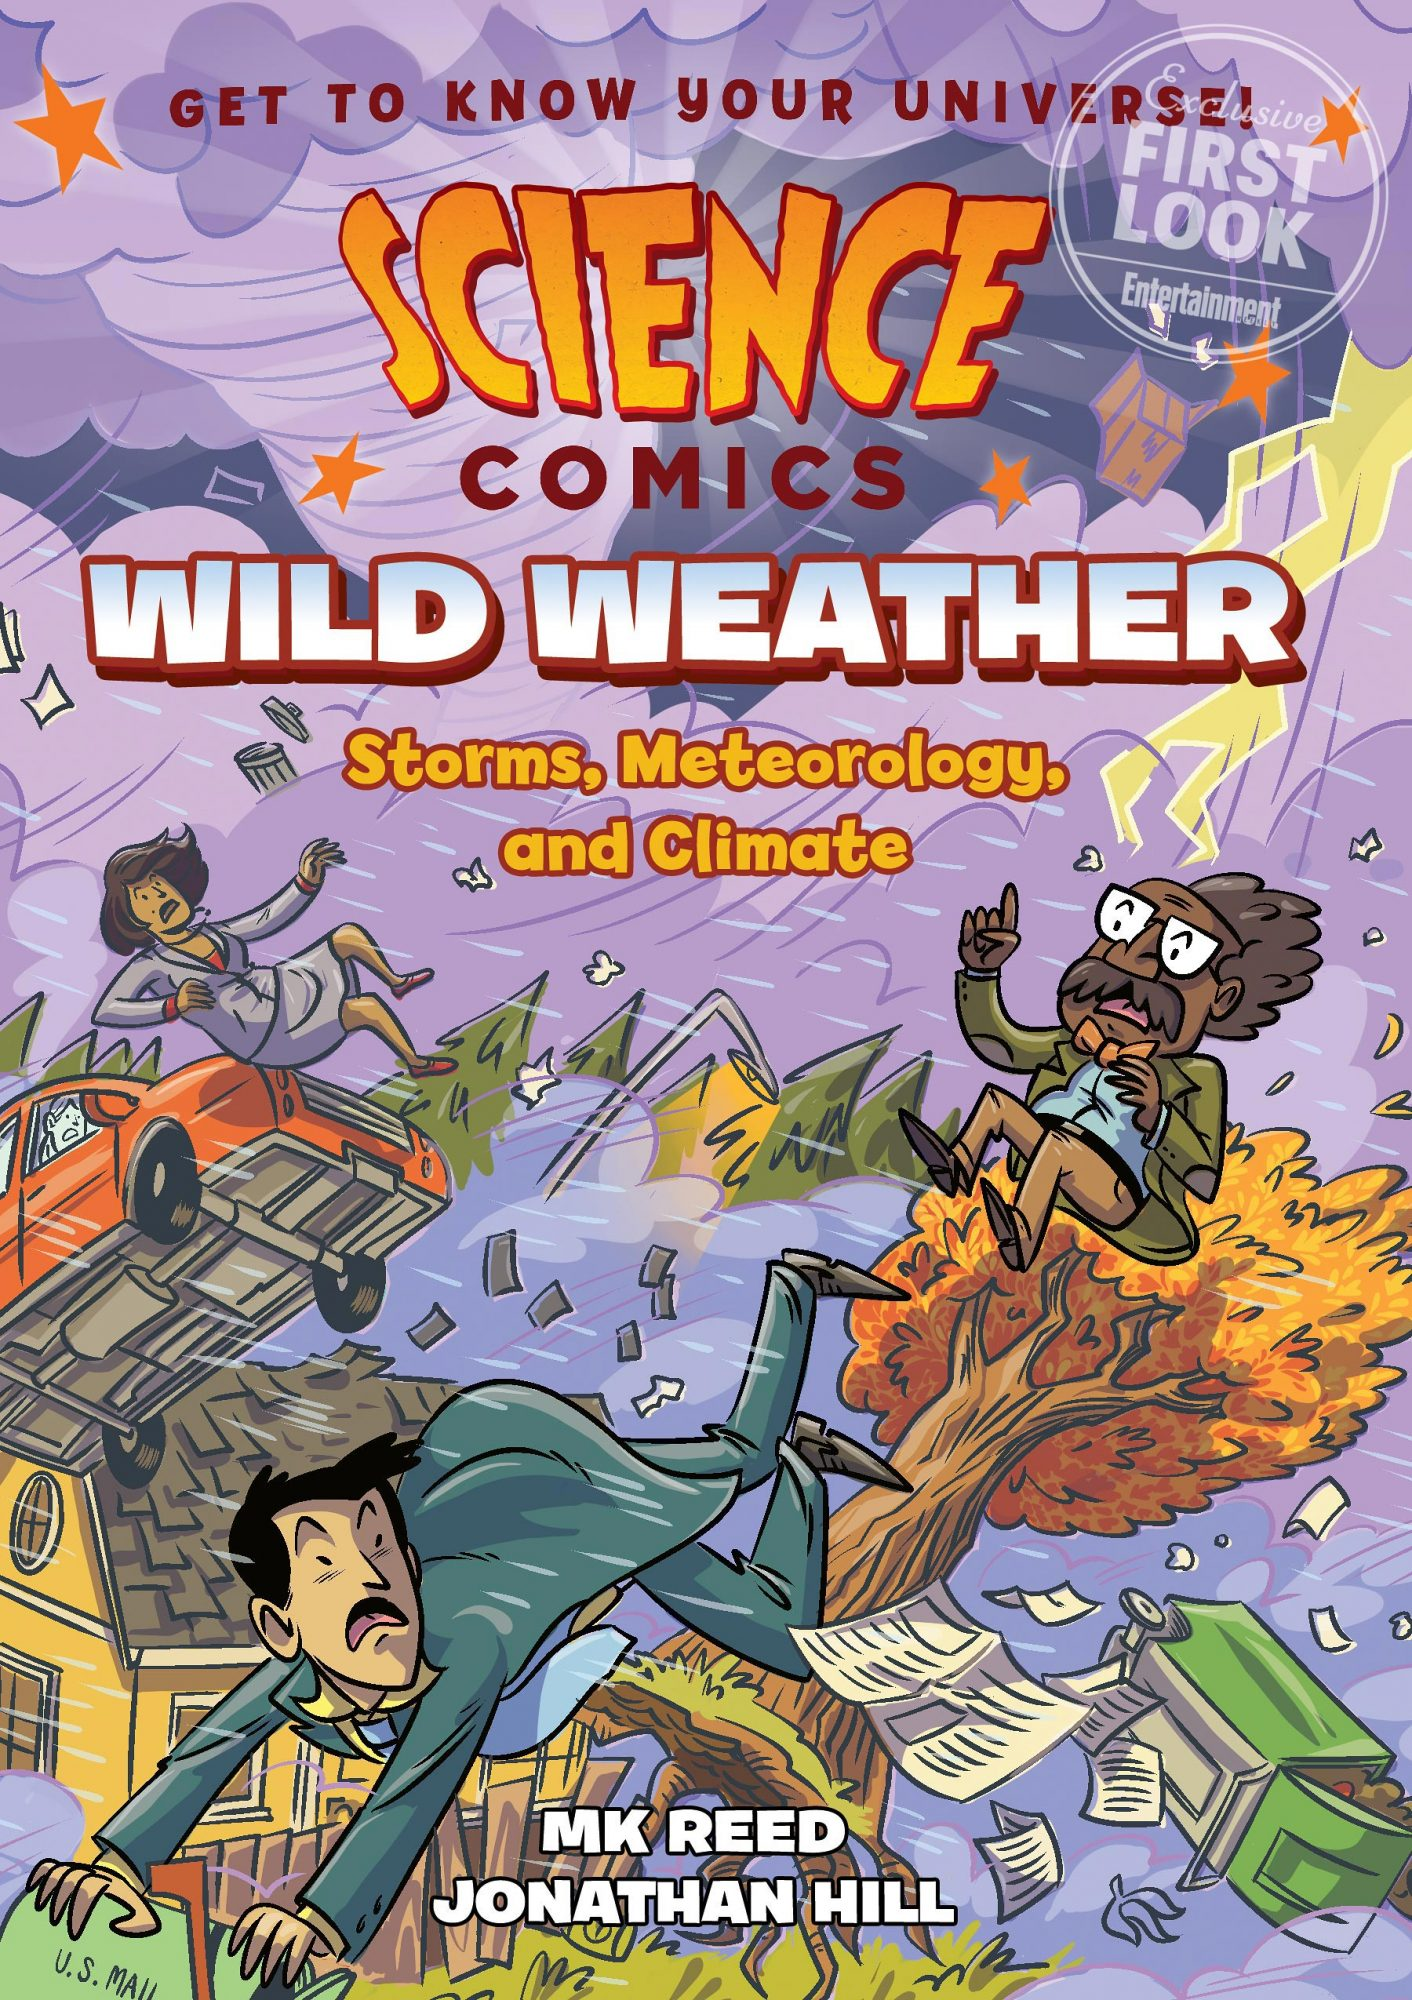 Science Comics: Wild Weather by MK Reed and Jonathan Hunt (April 16)